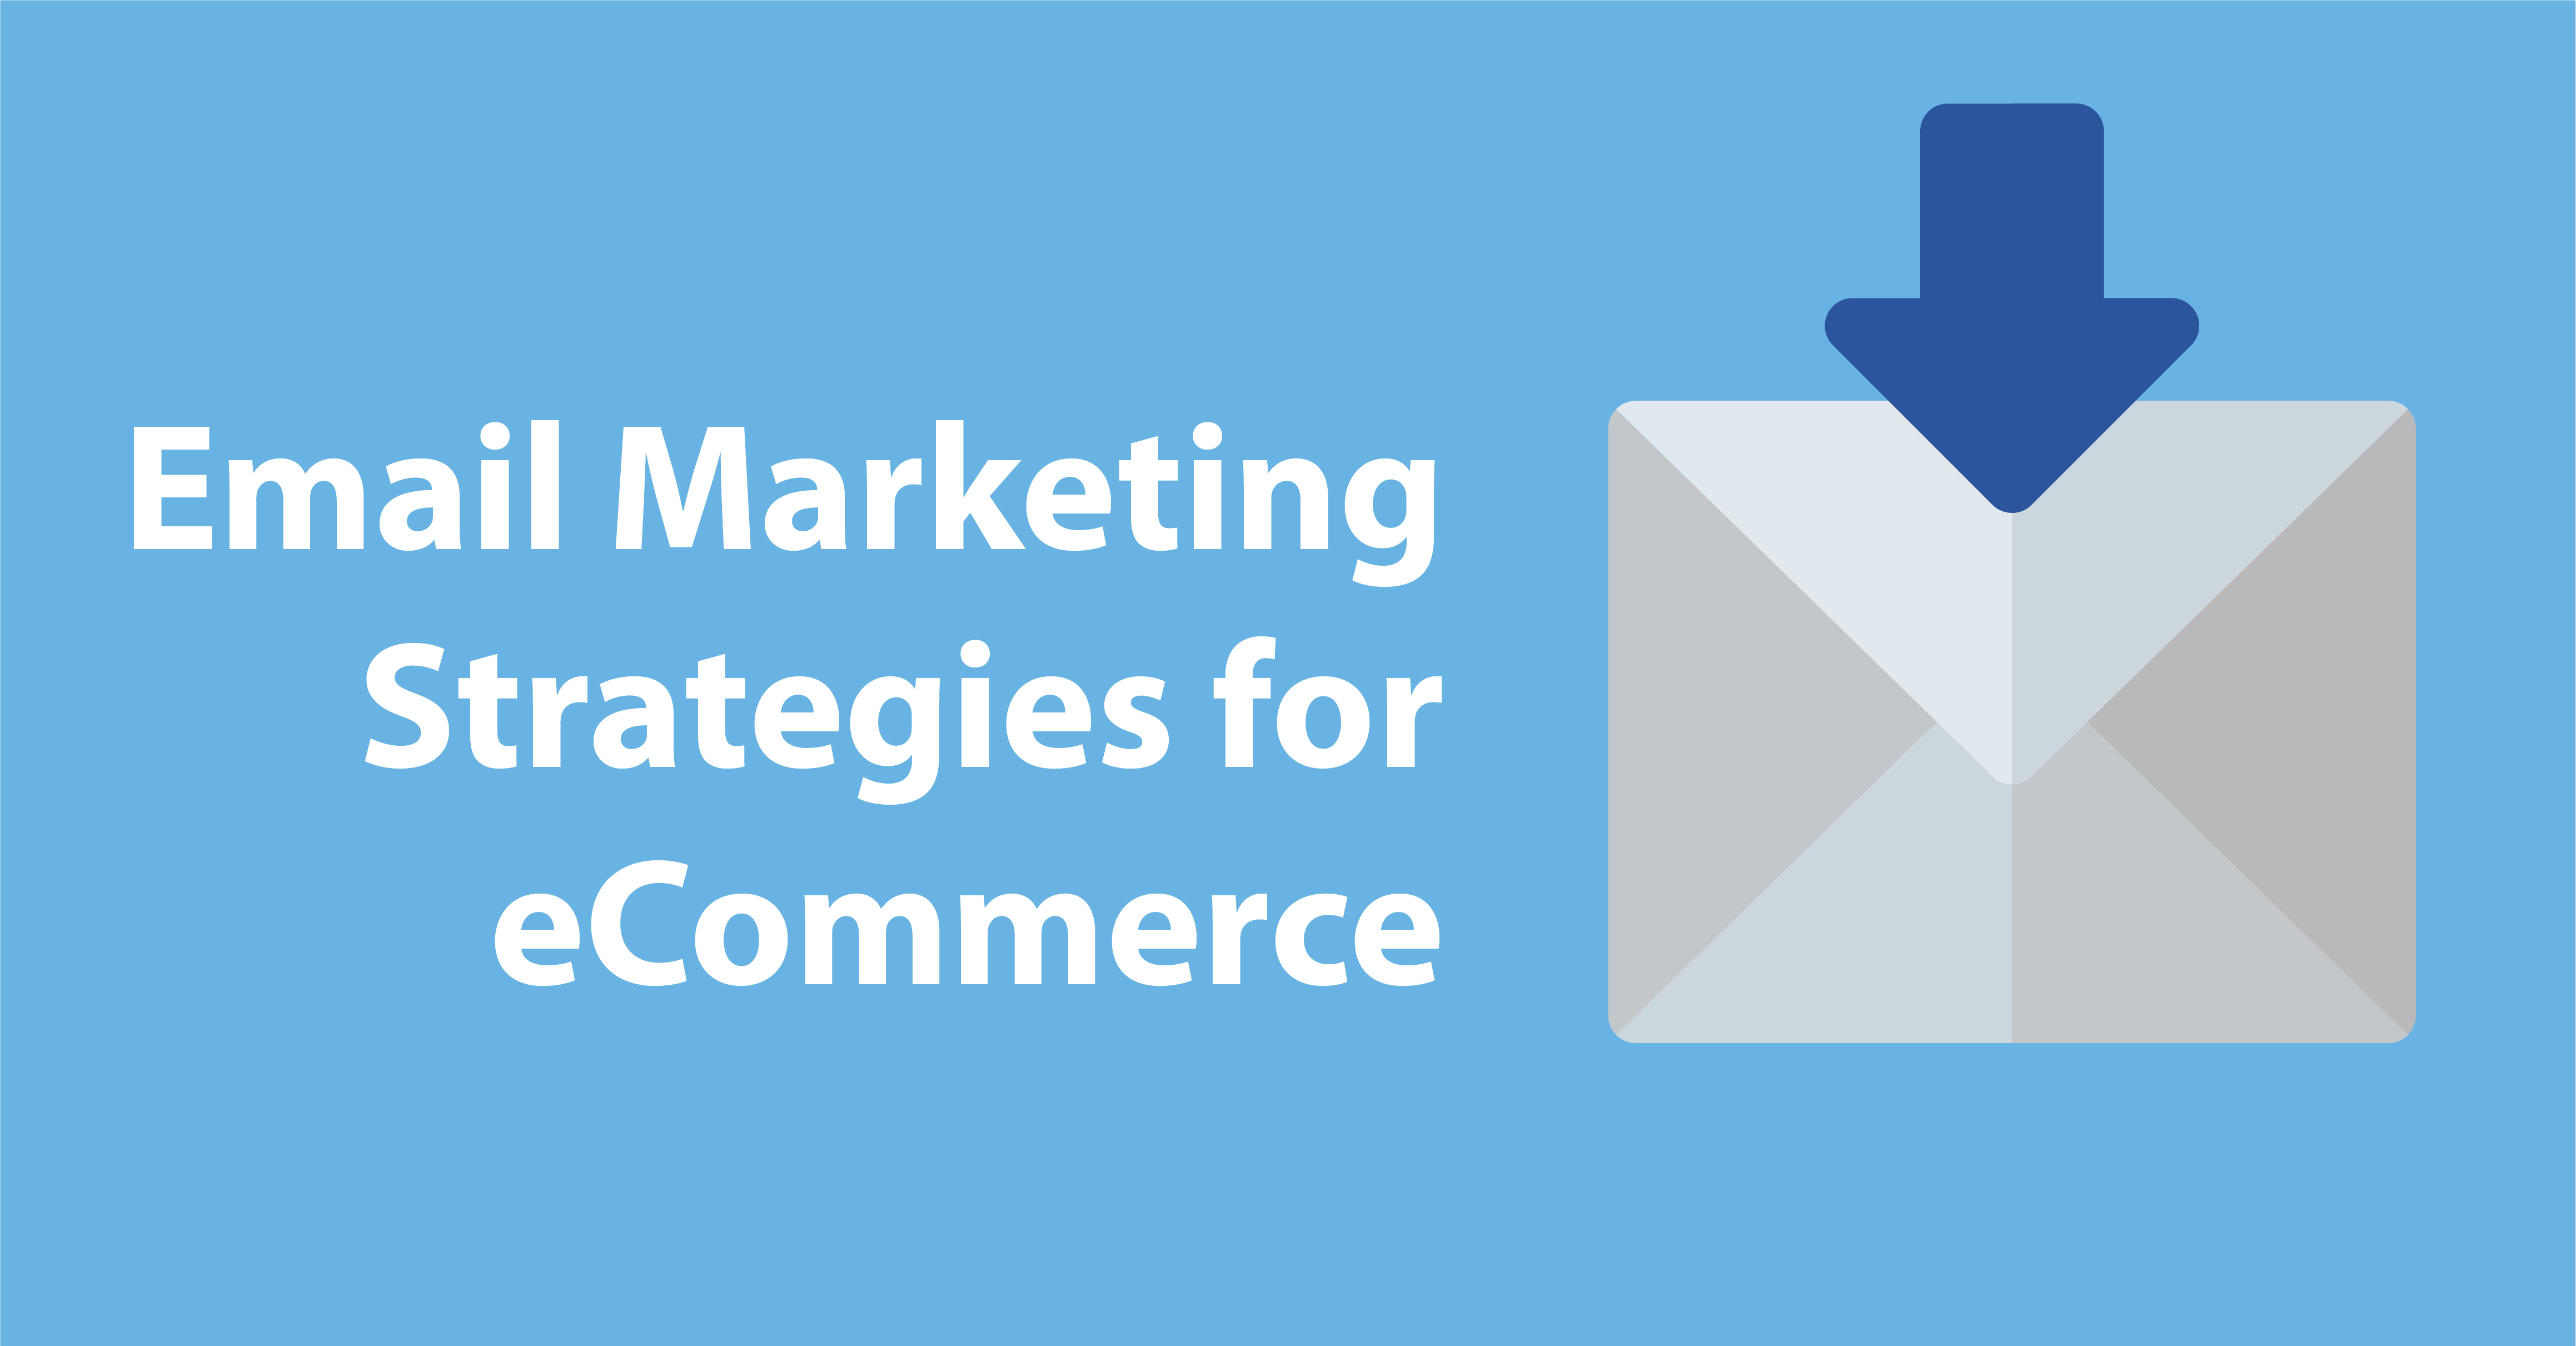 Email Marketing Strategies for eCommerce